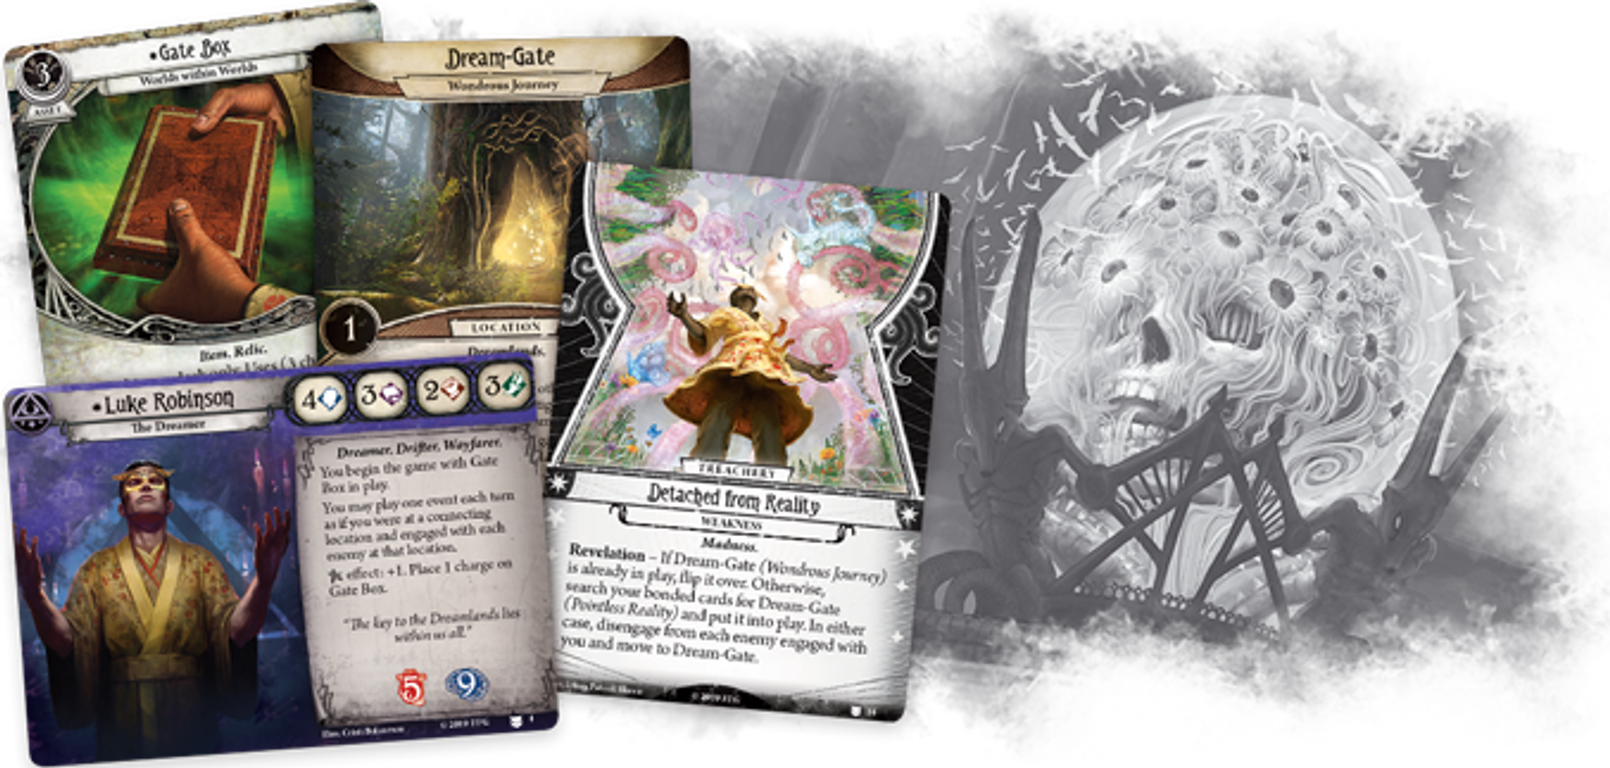 Arkham Horror: The Card Game - The Dream-Eaters: Expansion cards